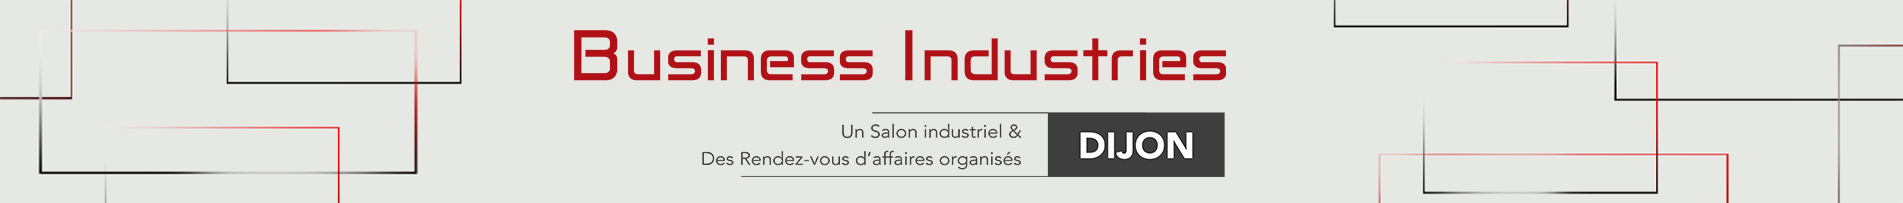 Business Industries Dijon